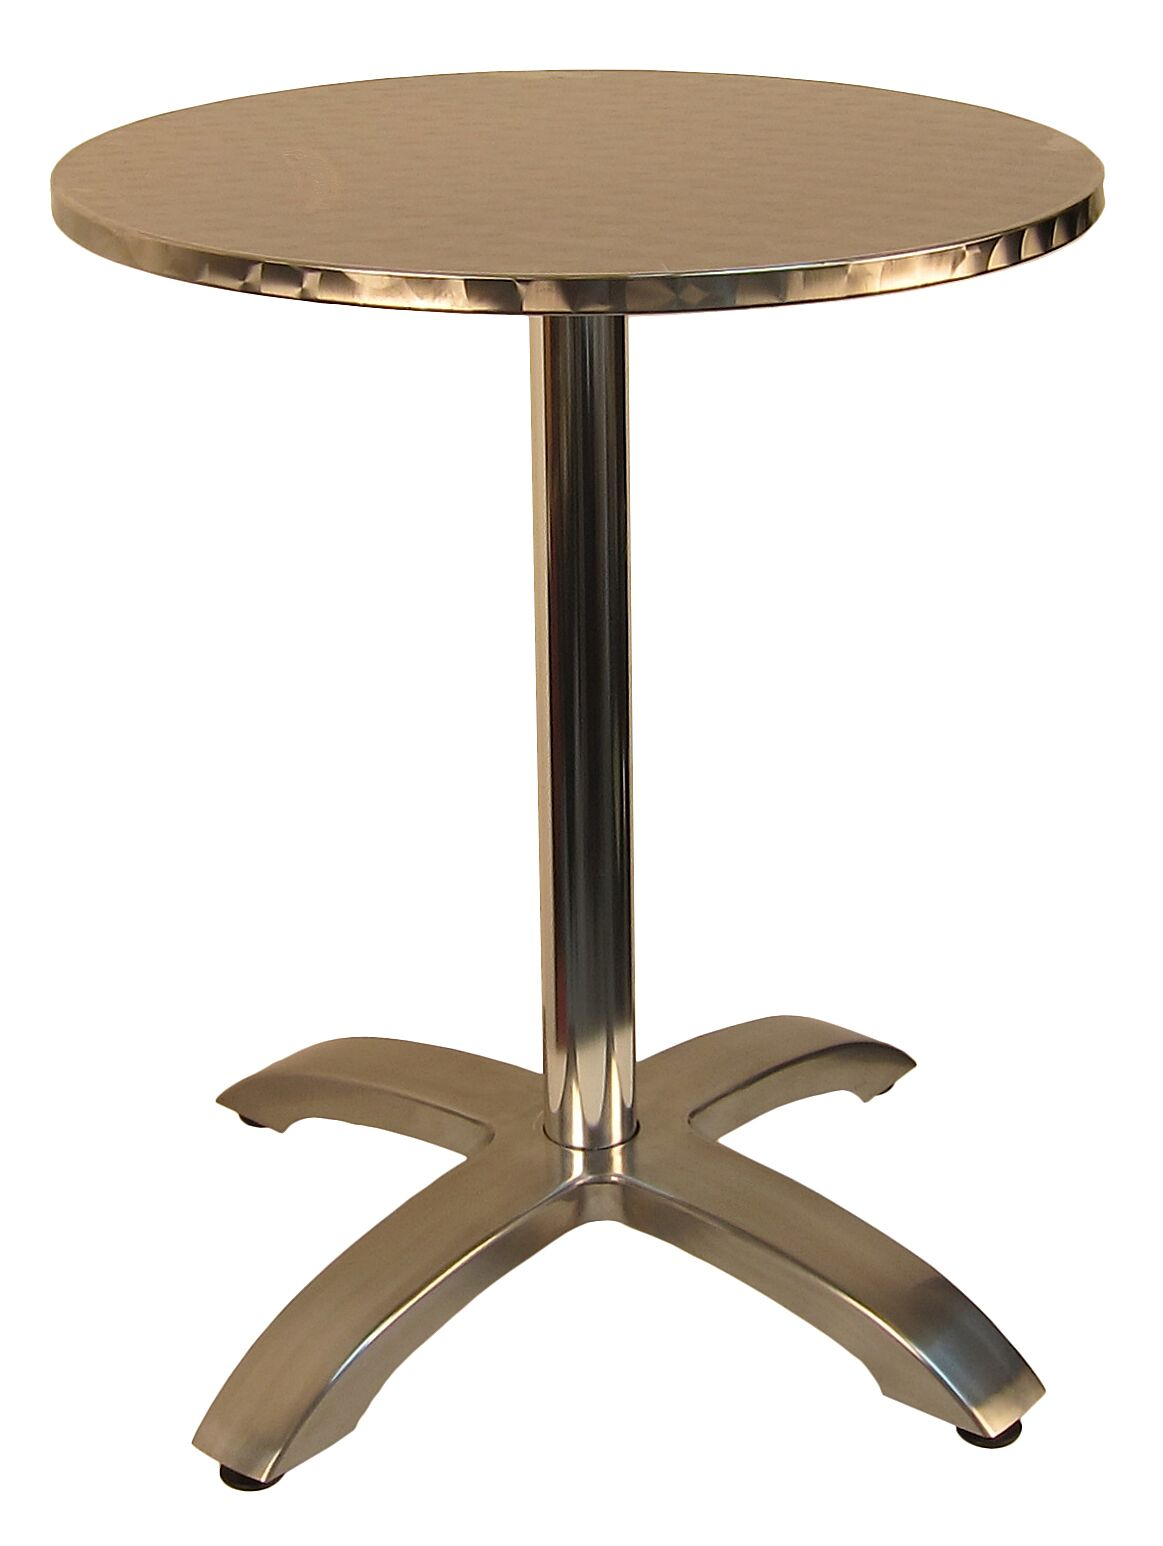 Stainless Restaurant Table Stainless Aluminum Round Indoor Outdoor Table